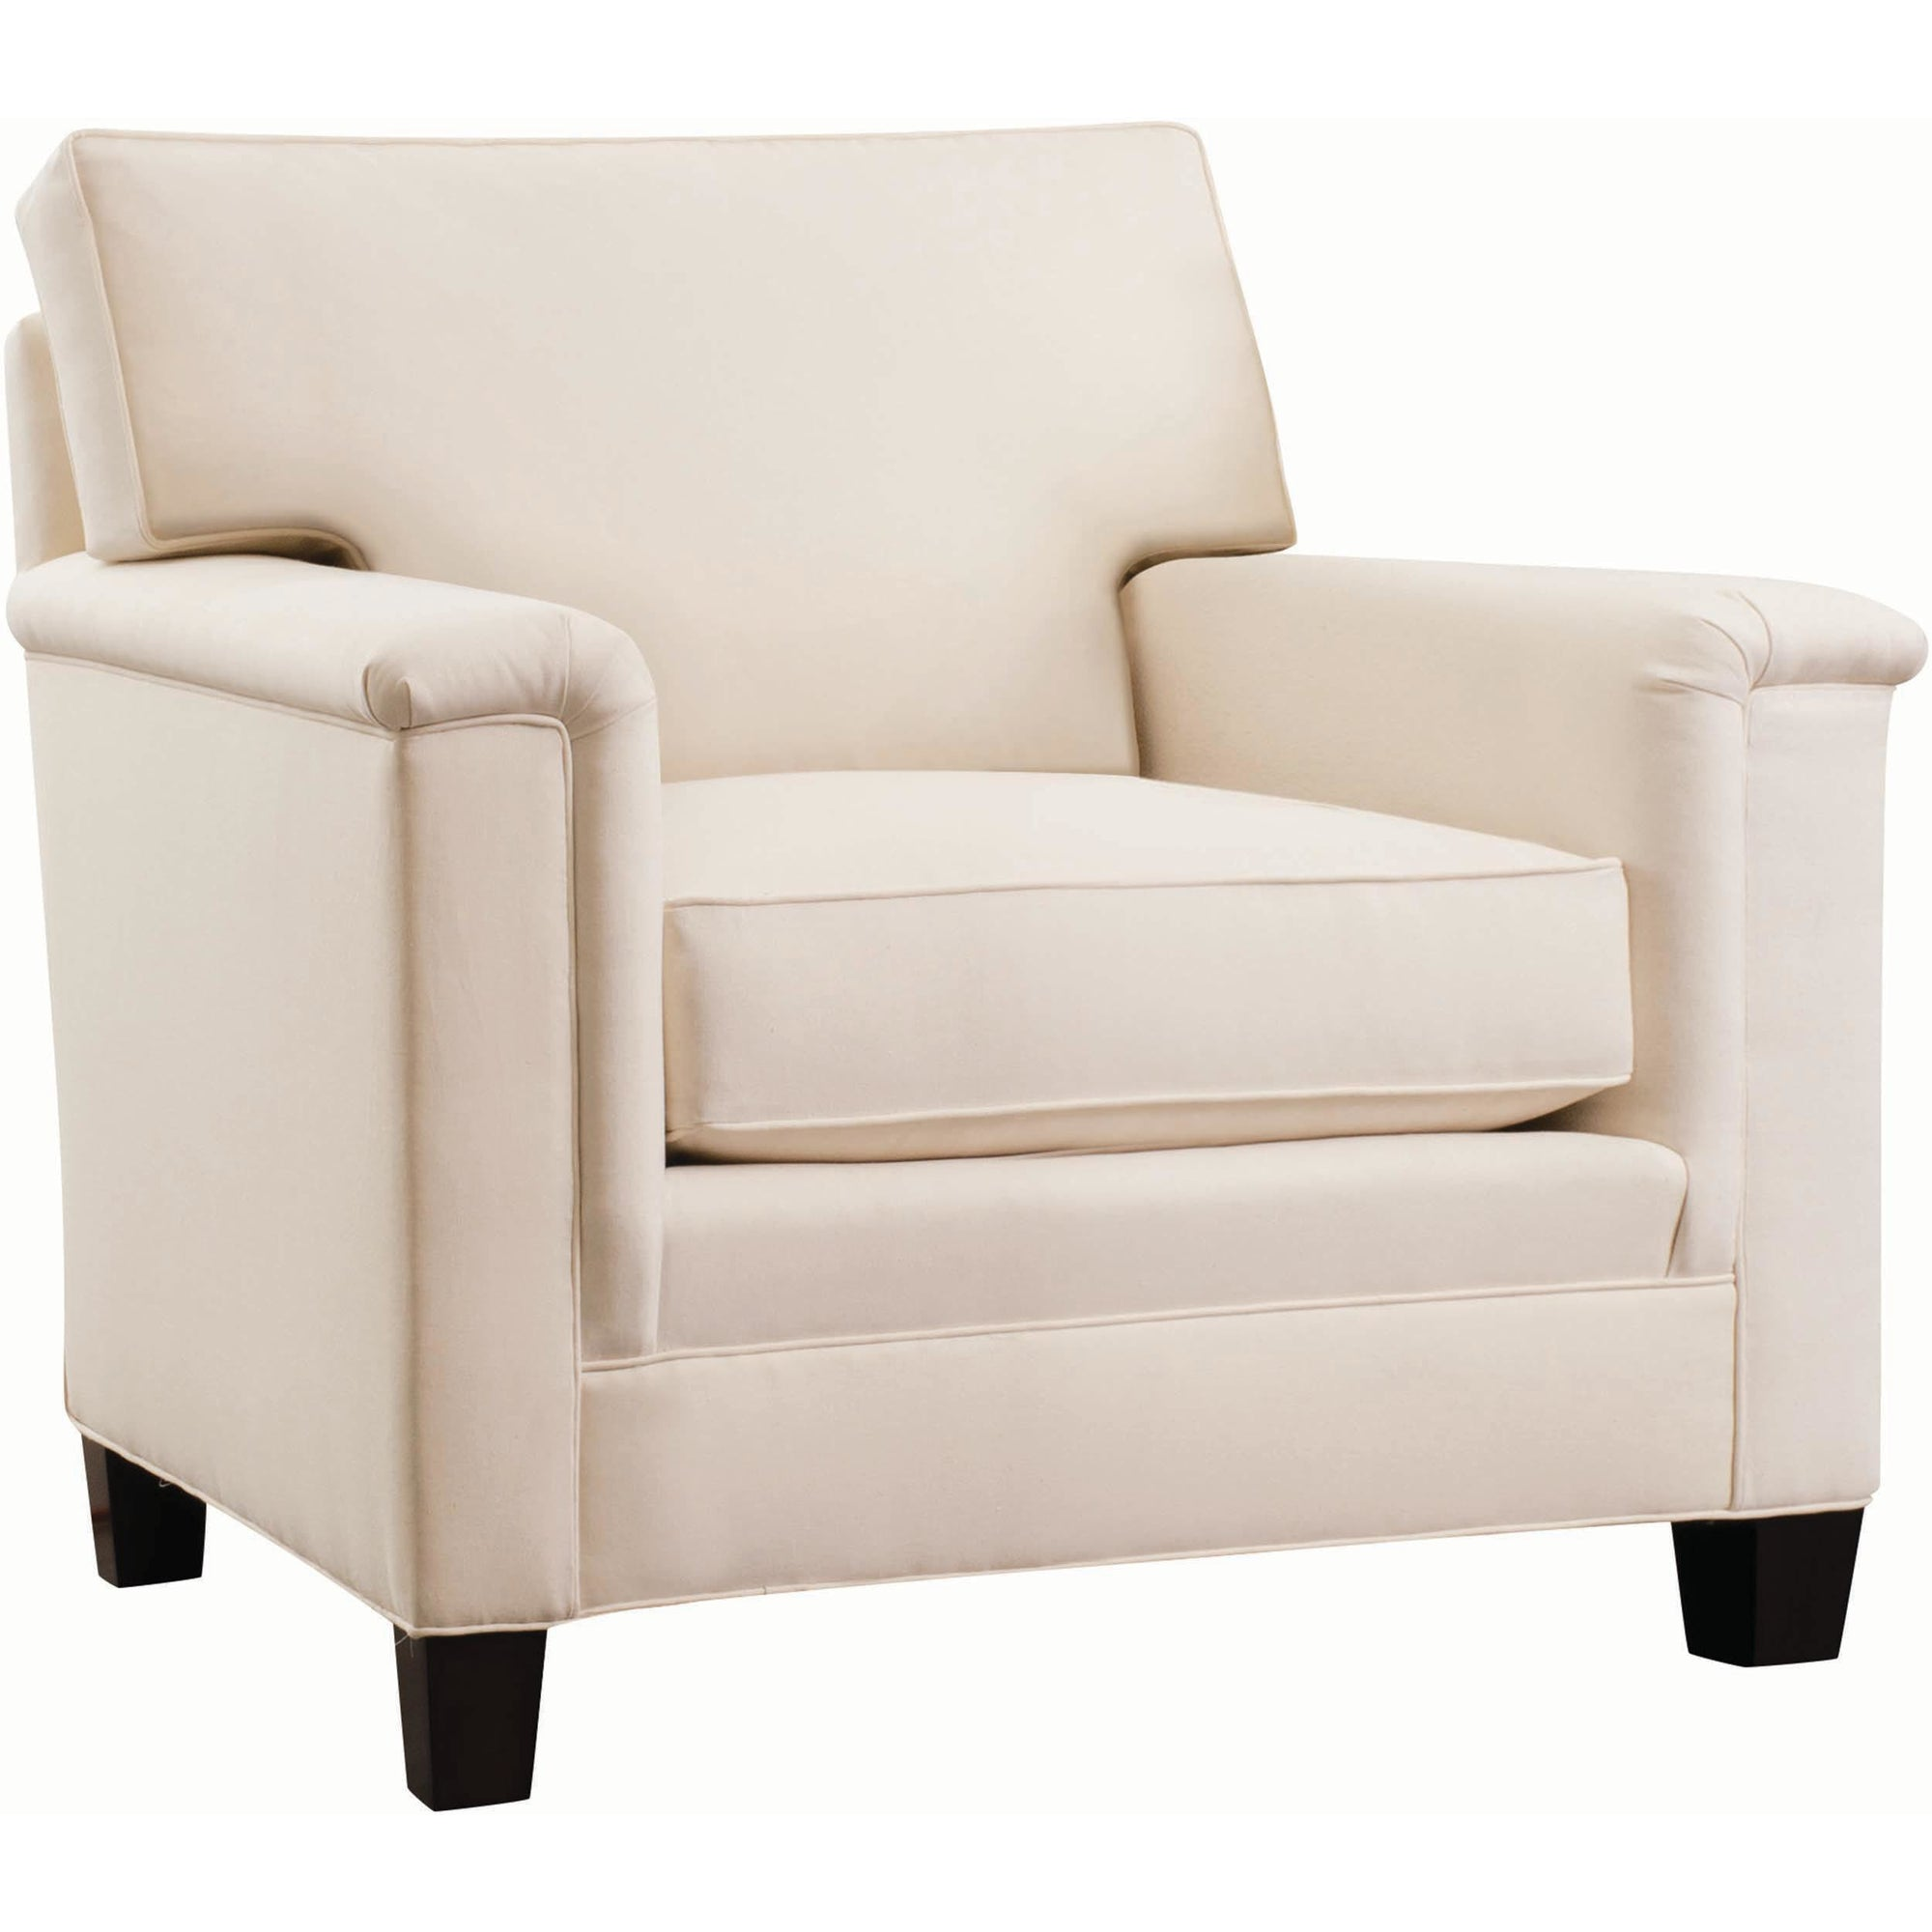 7000 Series Arm Chair